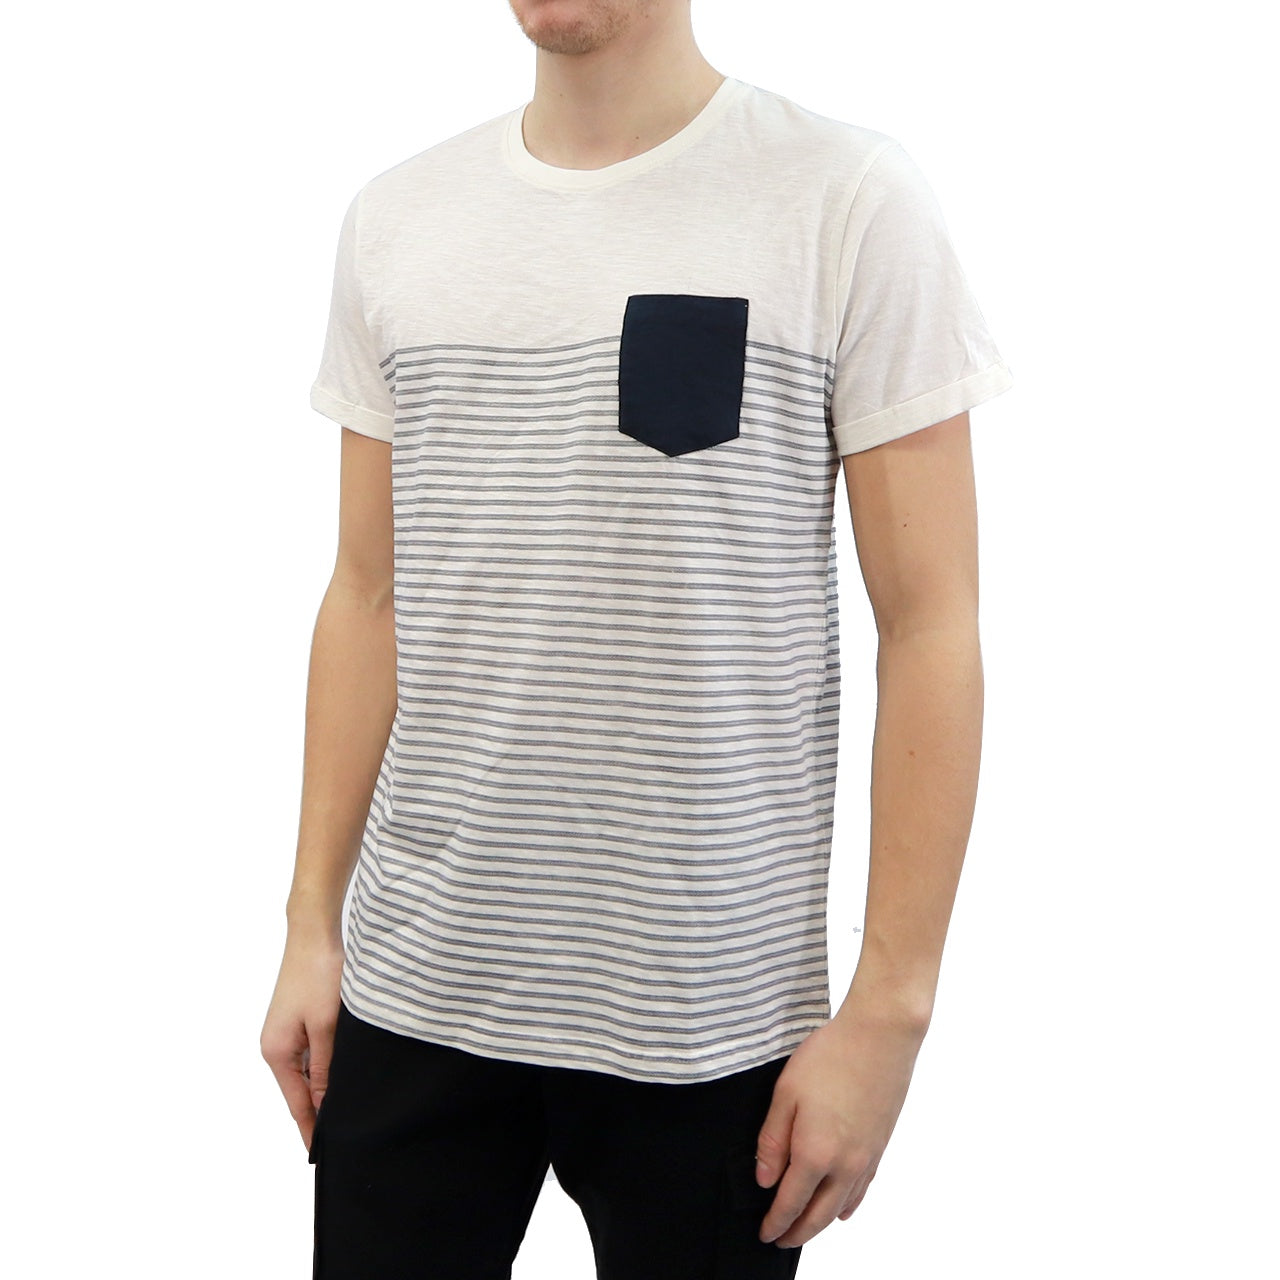 Patch Pocket w/ Placed Stripes Tee